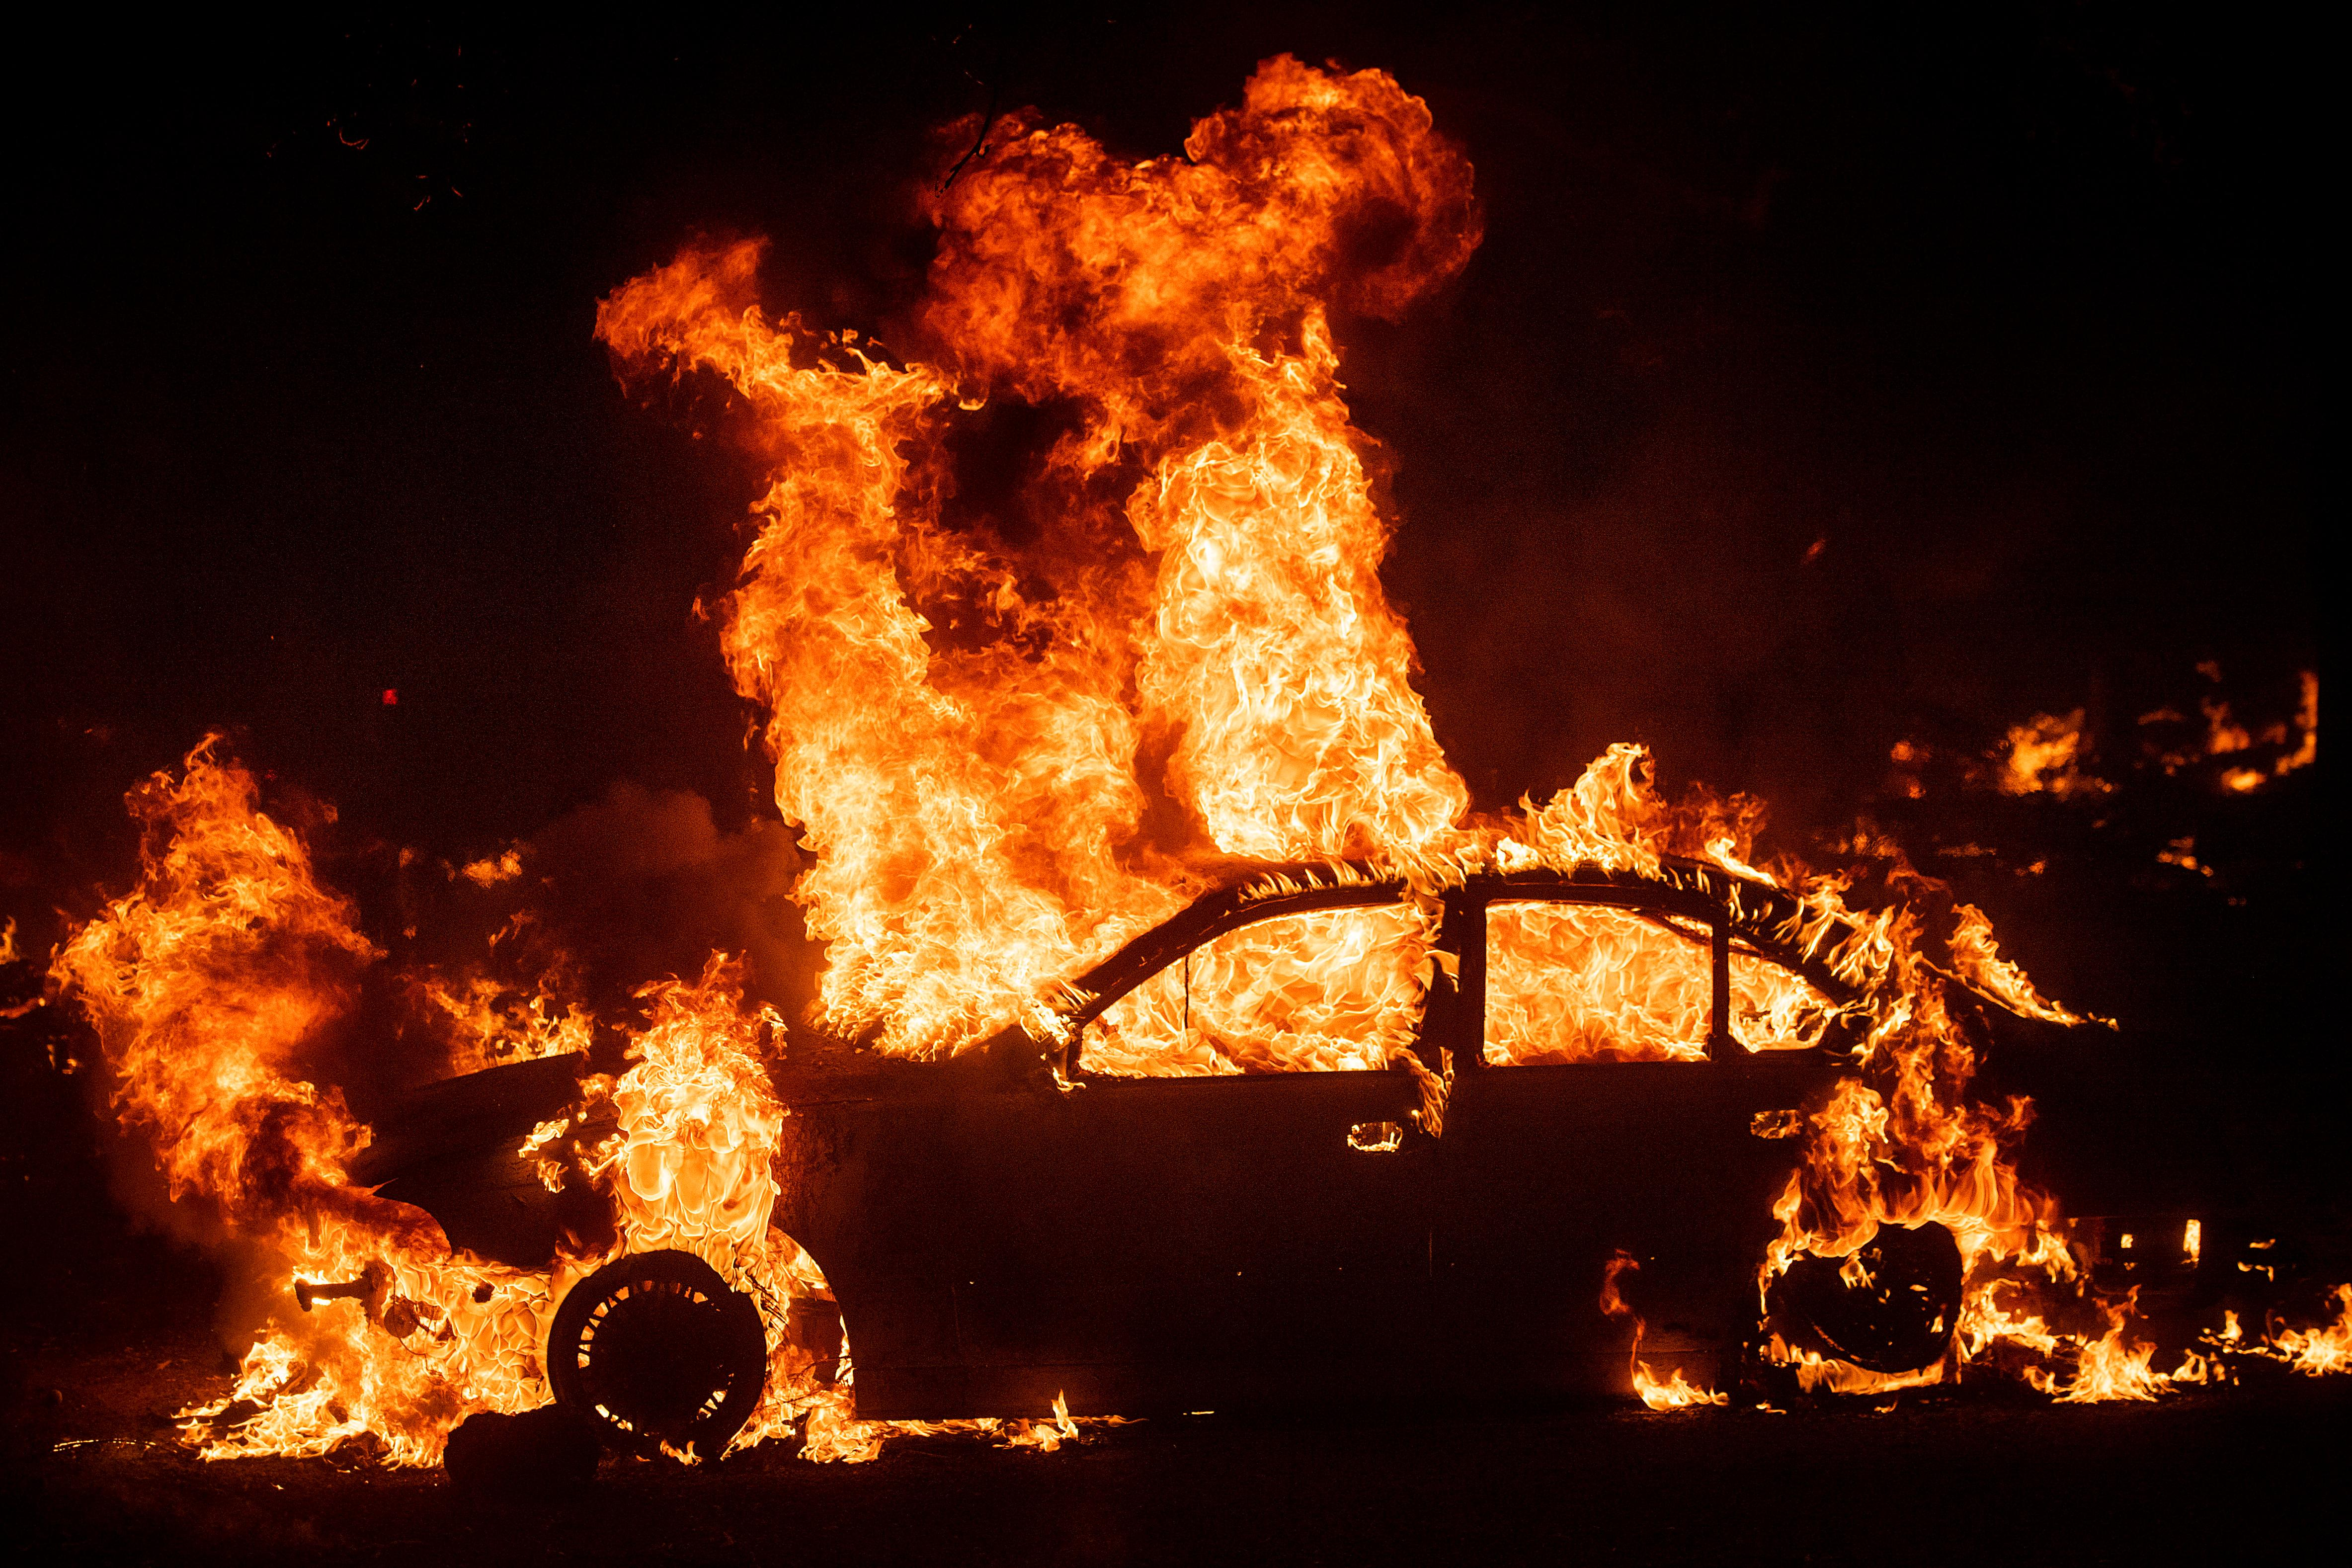 Flames from the Kincade Fire consume a car in the Jimtown community of unincorporated Sonoma County, Calif., on Thursday, Oct. 24, 2019. (AP Photo/Noah Berger)